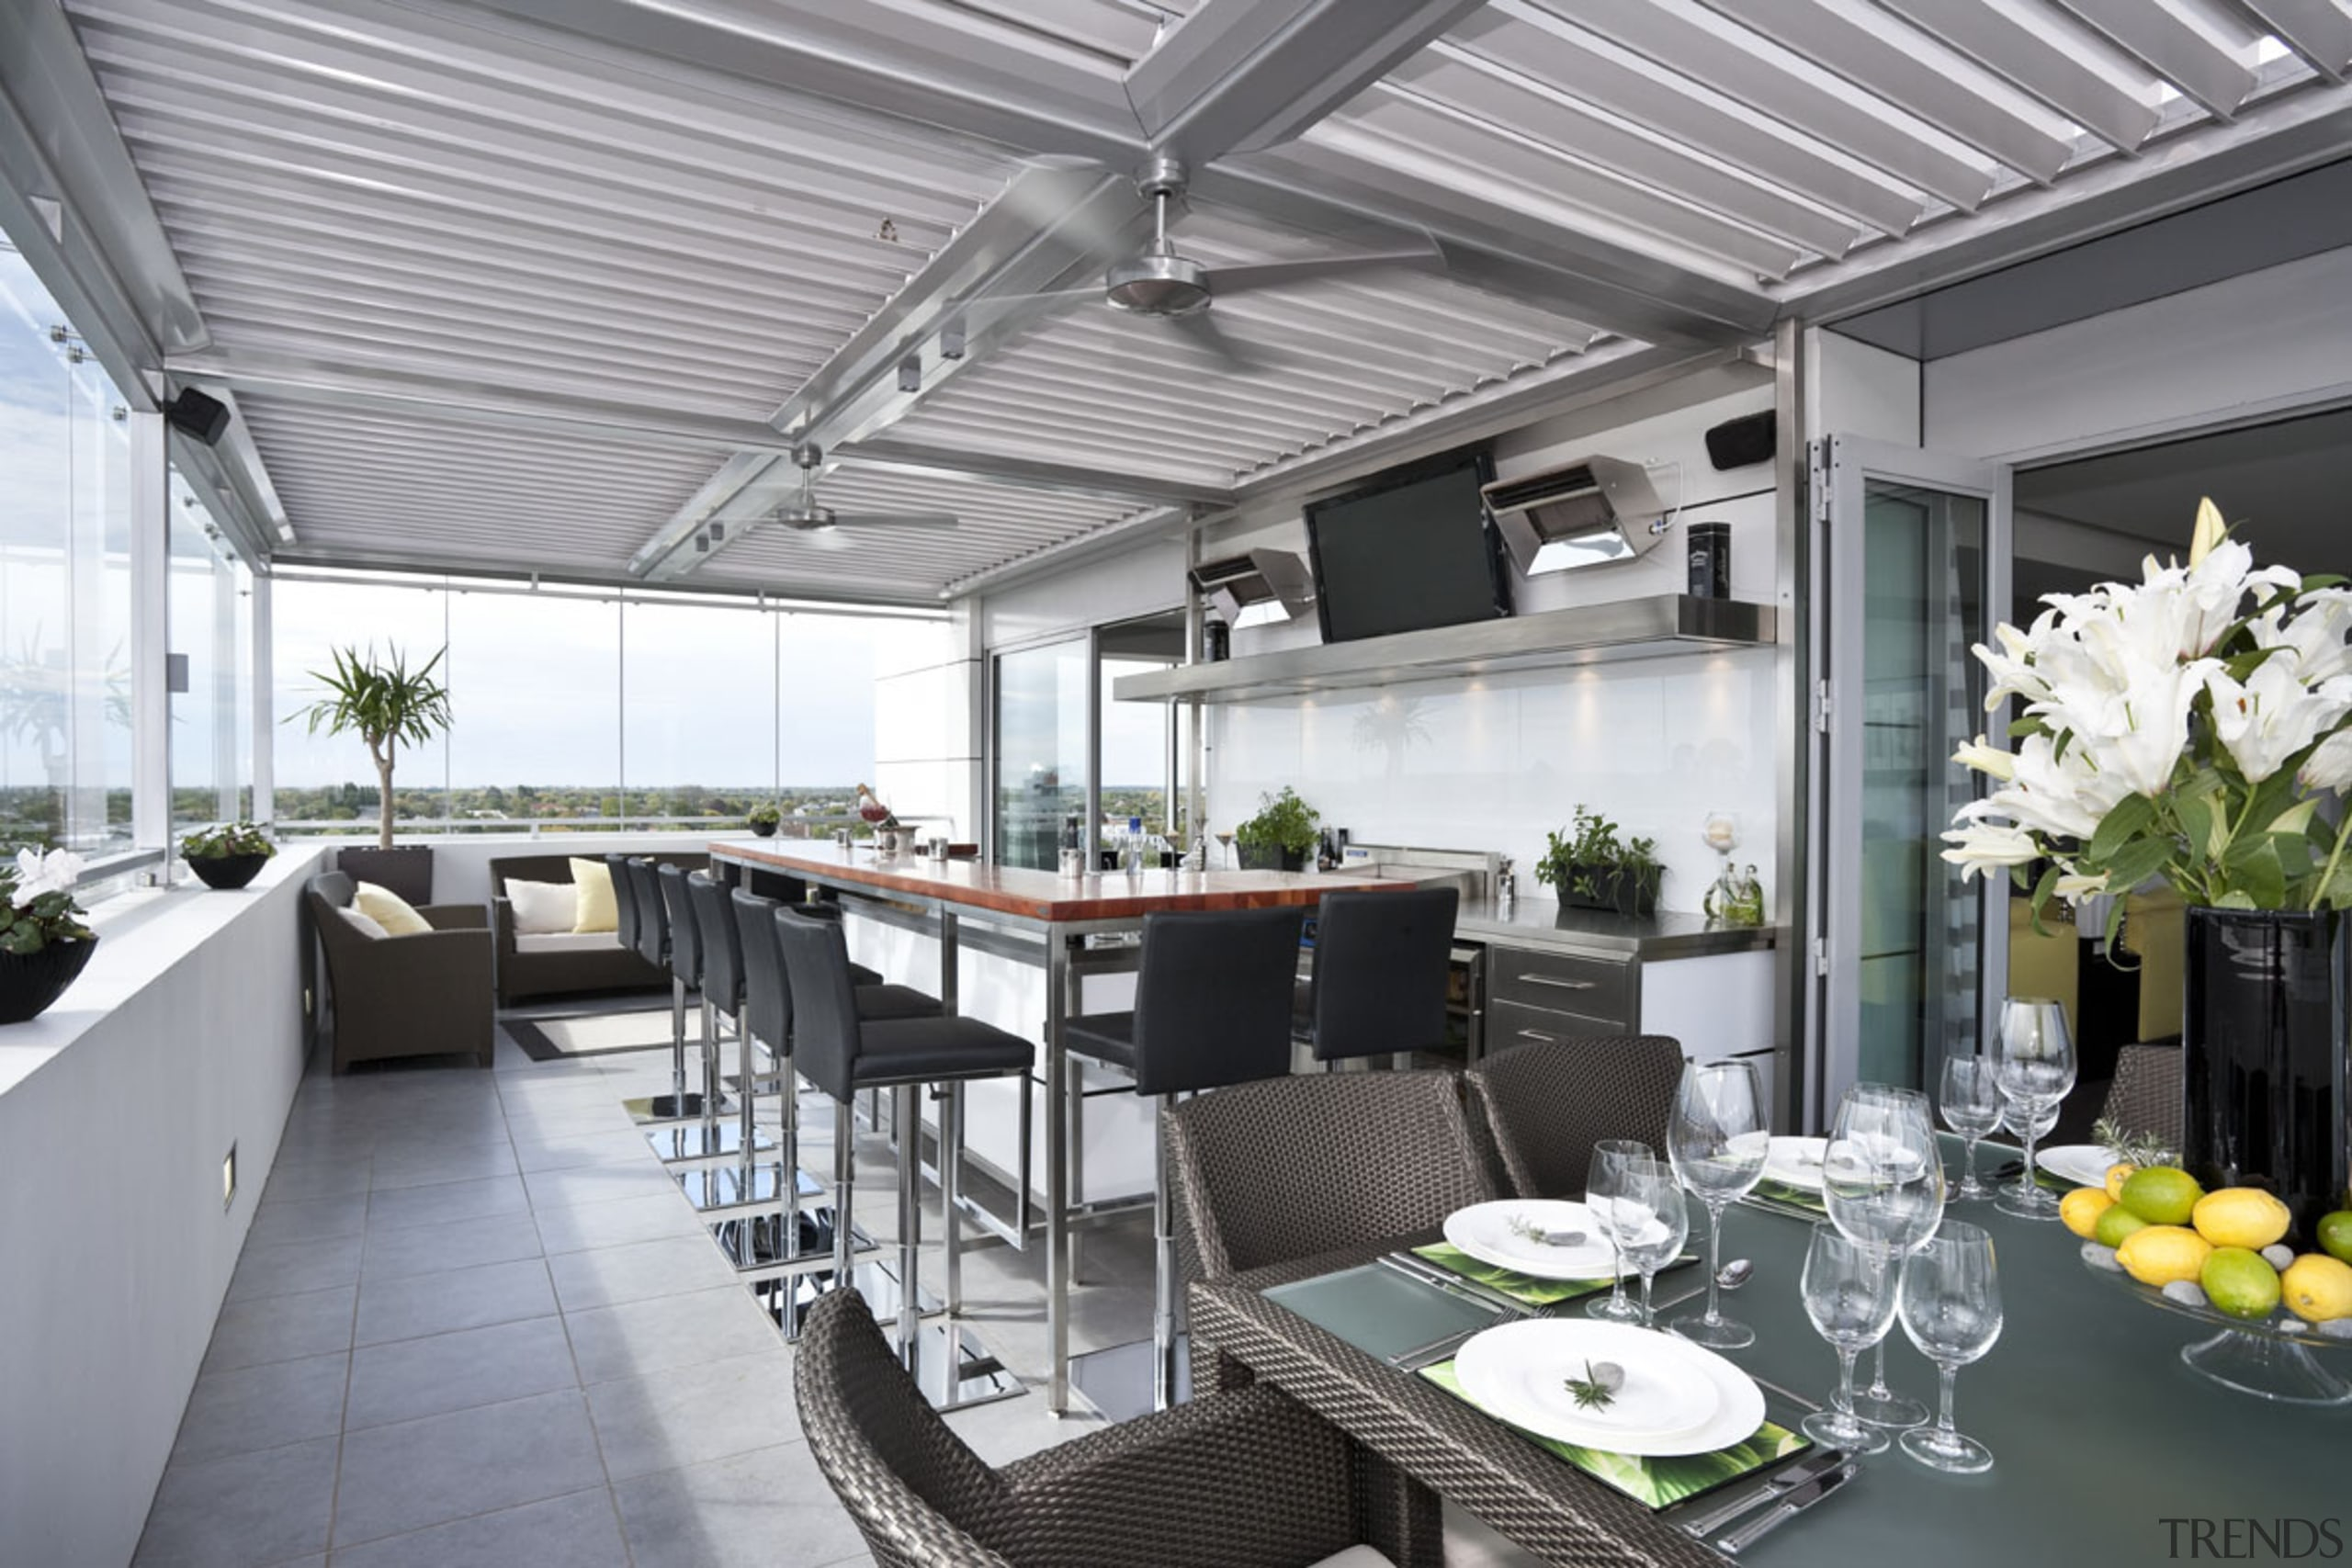 This outdoor kitchen space can be used interior design, patio, real estate, roof, gray